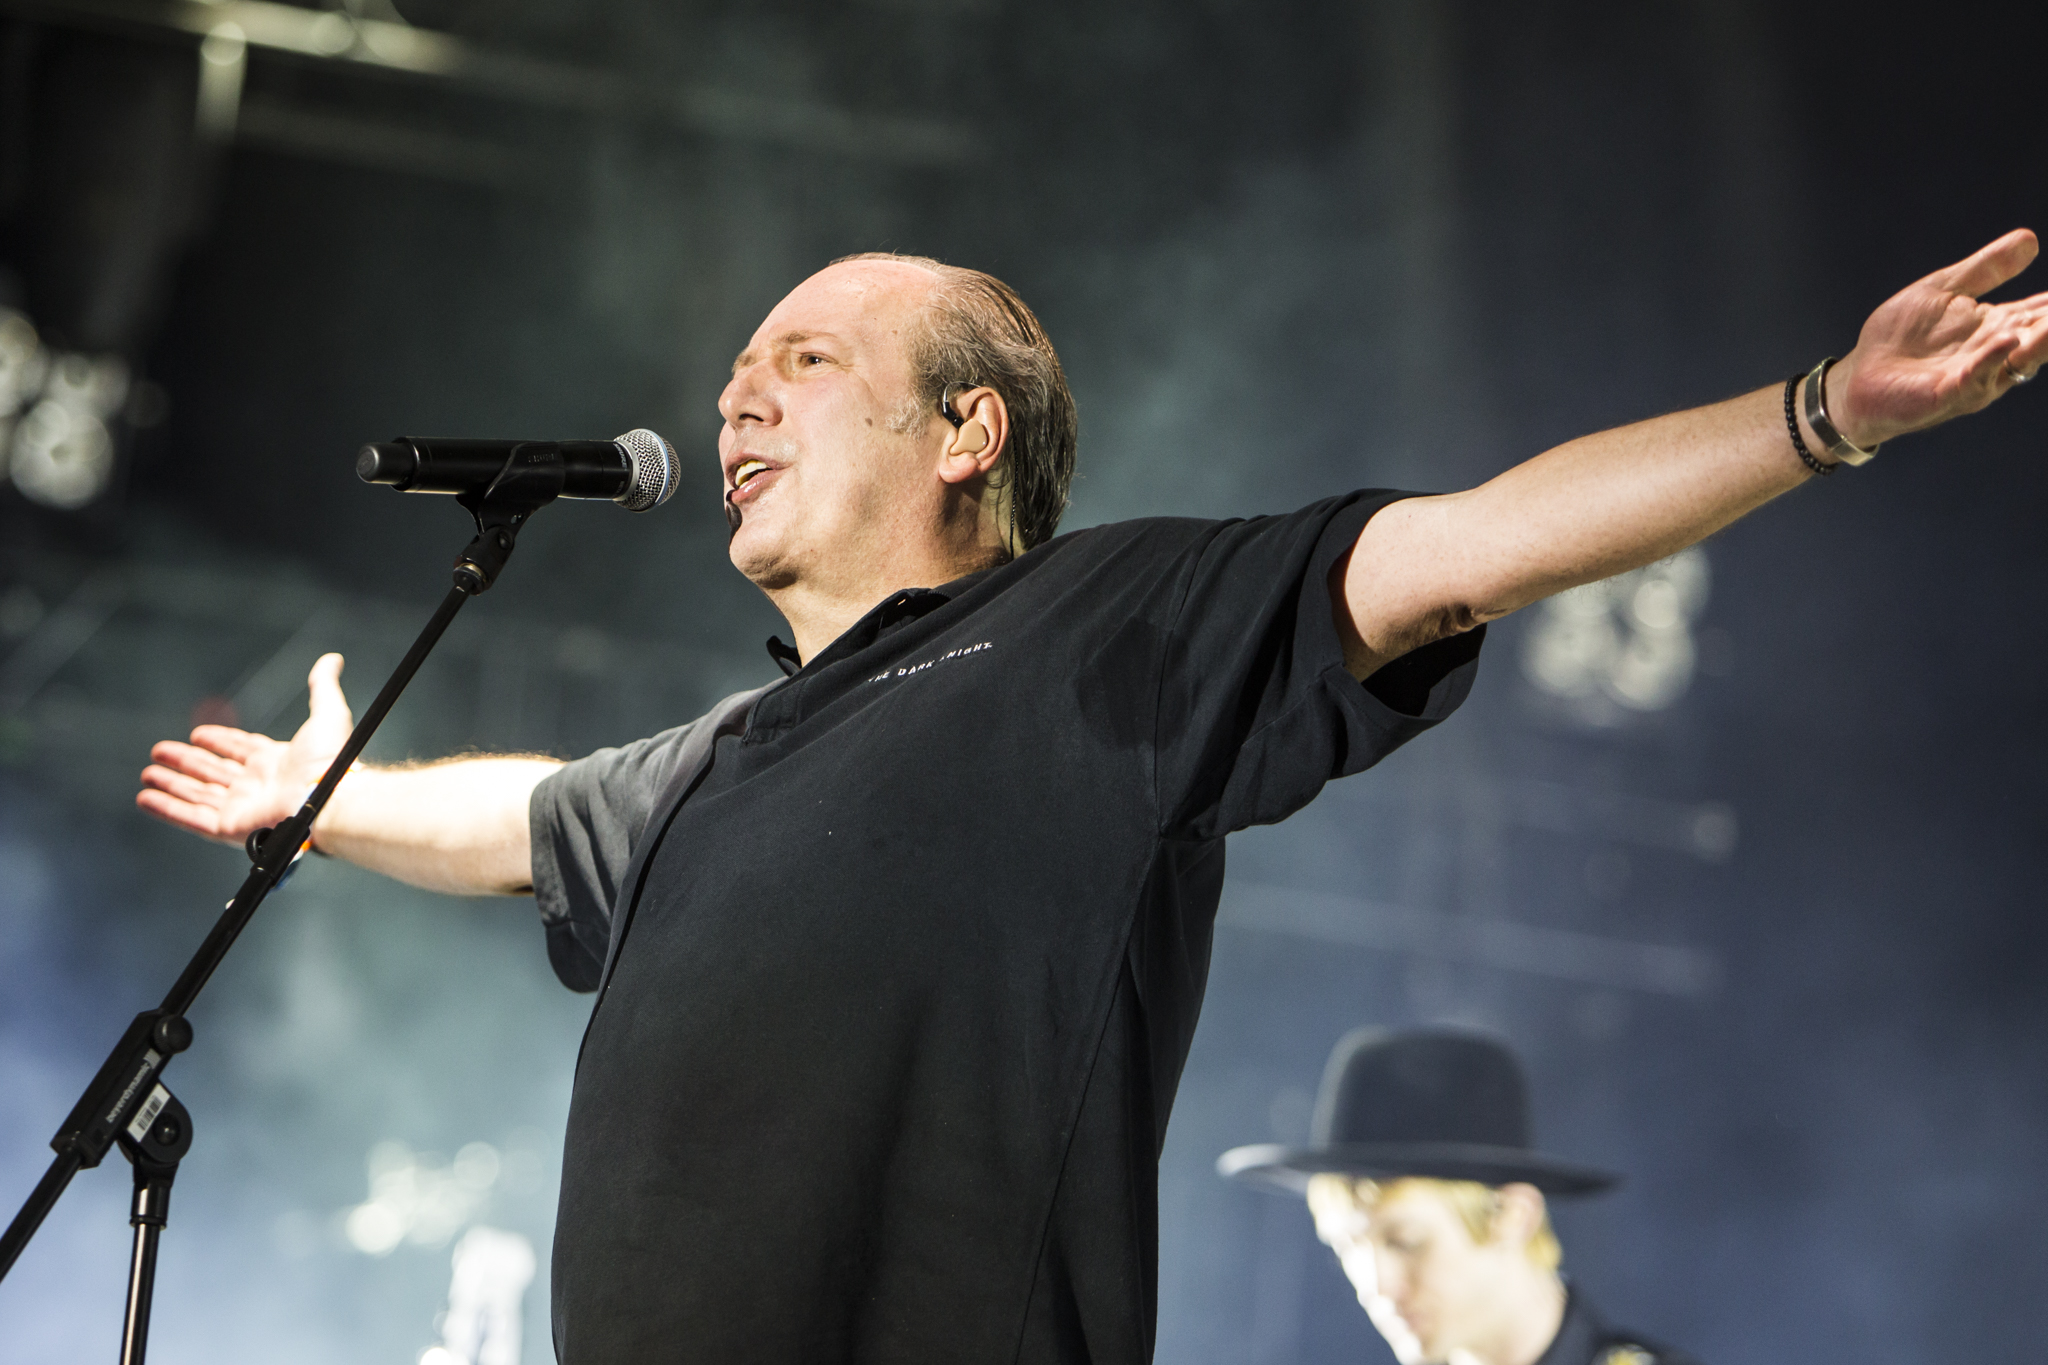 Hans Zimmer, Live, Performing, Hands Outstretched, Philip Cosores